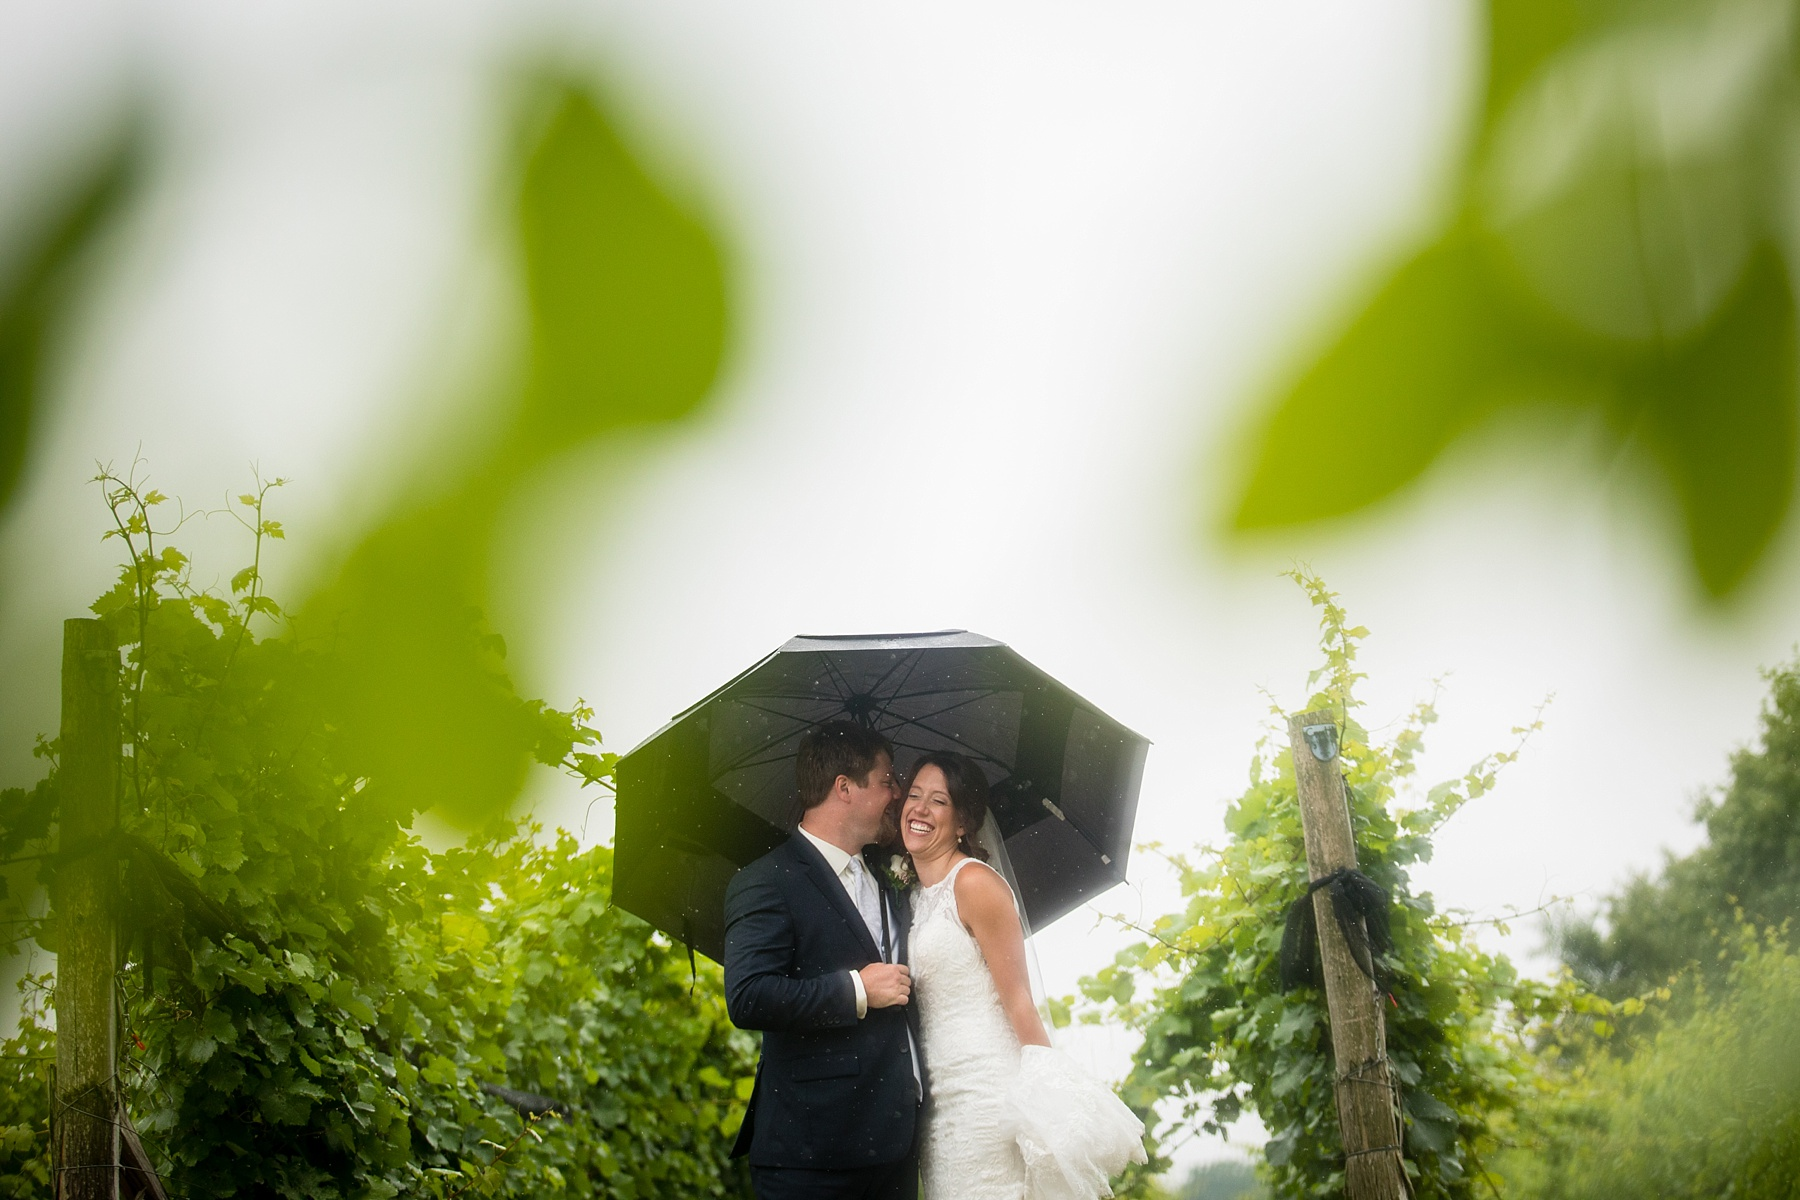 Brandon_Shafer_Photography_Elizabeth_Scott_Traverse_City_Wedding_0025.jpg